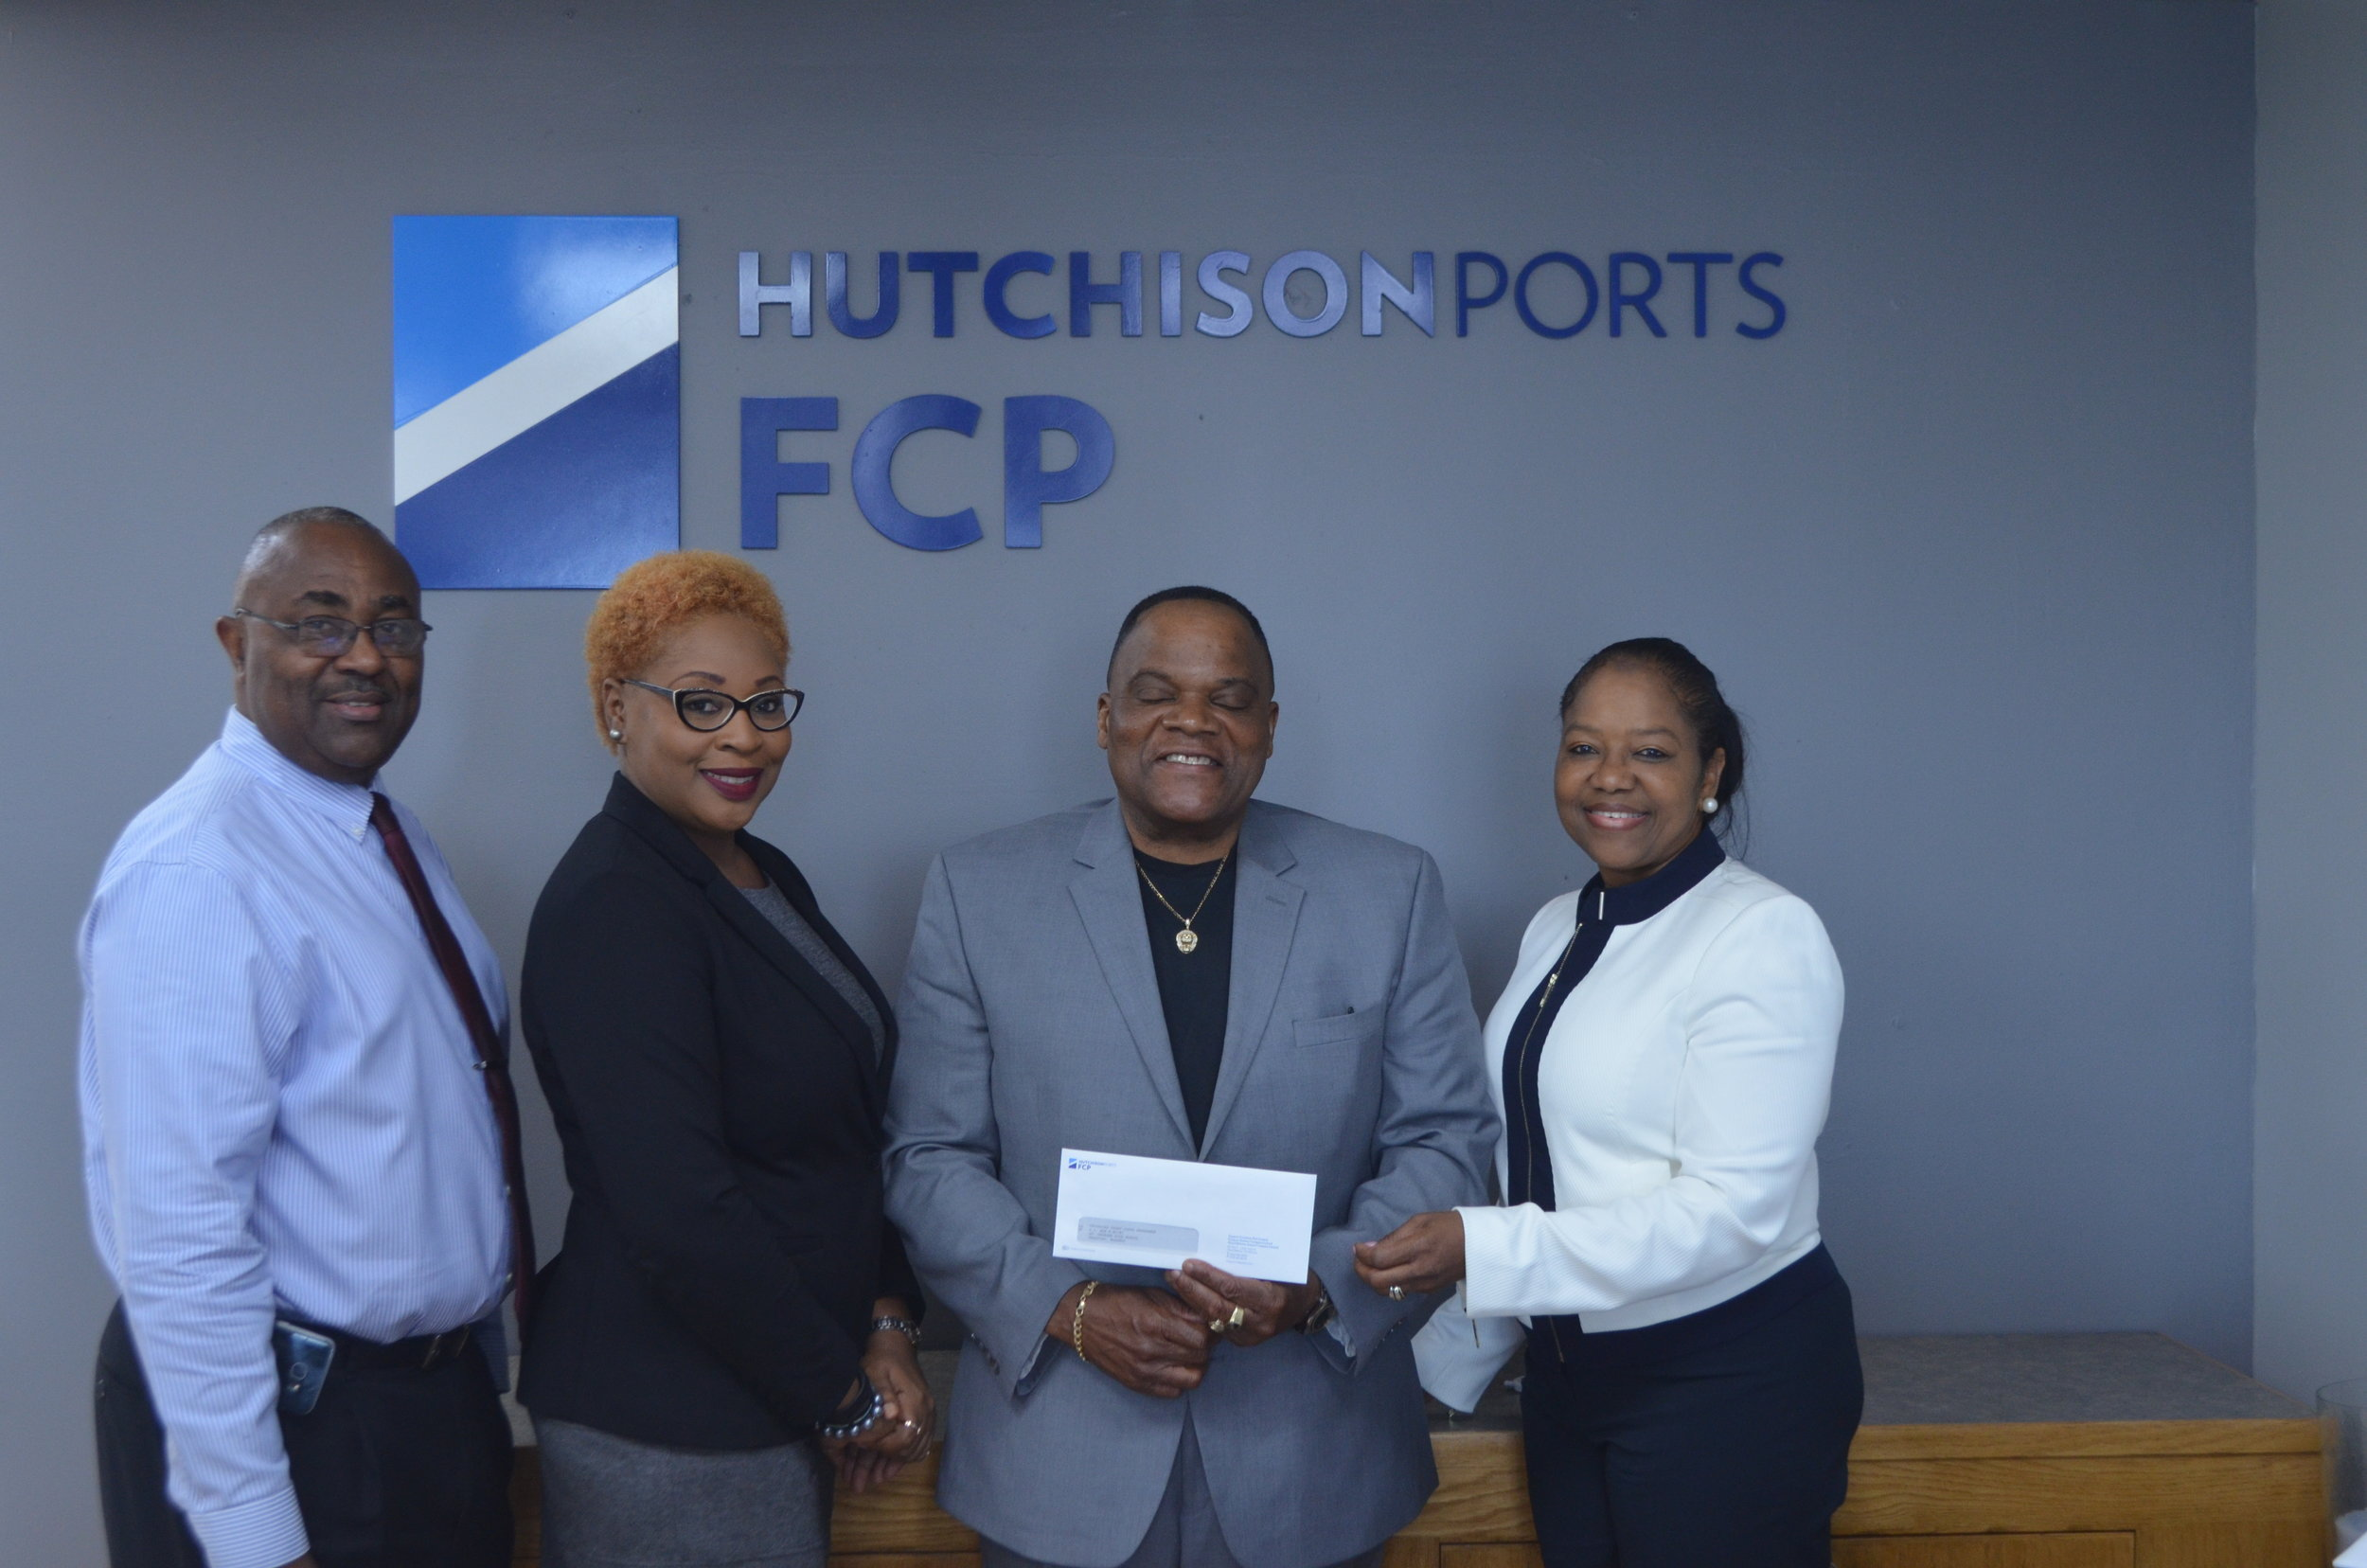 From Left to Right:  Captain Orlando Forbes, Port Director, Hutchison Ports FHC, Ms. Chanan Fritz-Jones, Airport Director, Hutchison Ports GBAC, Bishop Joseph Hall, Coordinator, Technical Cadet Corp Programme and Sherry Brookes, Corporate\Government Affairs Director, Hutchison Ports FCP.